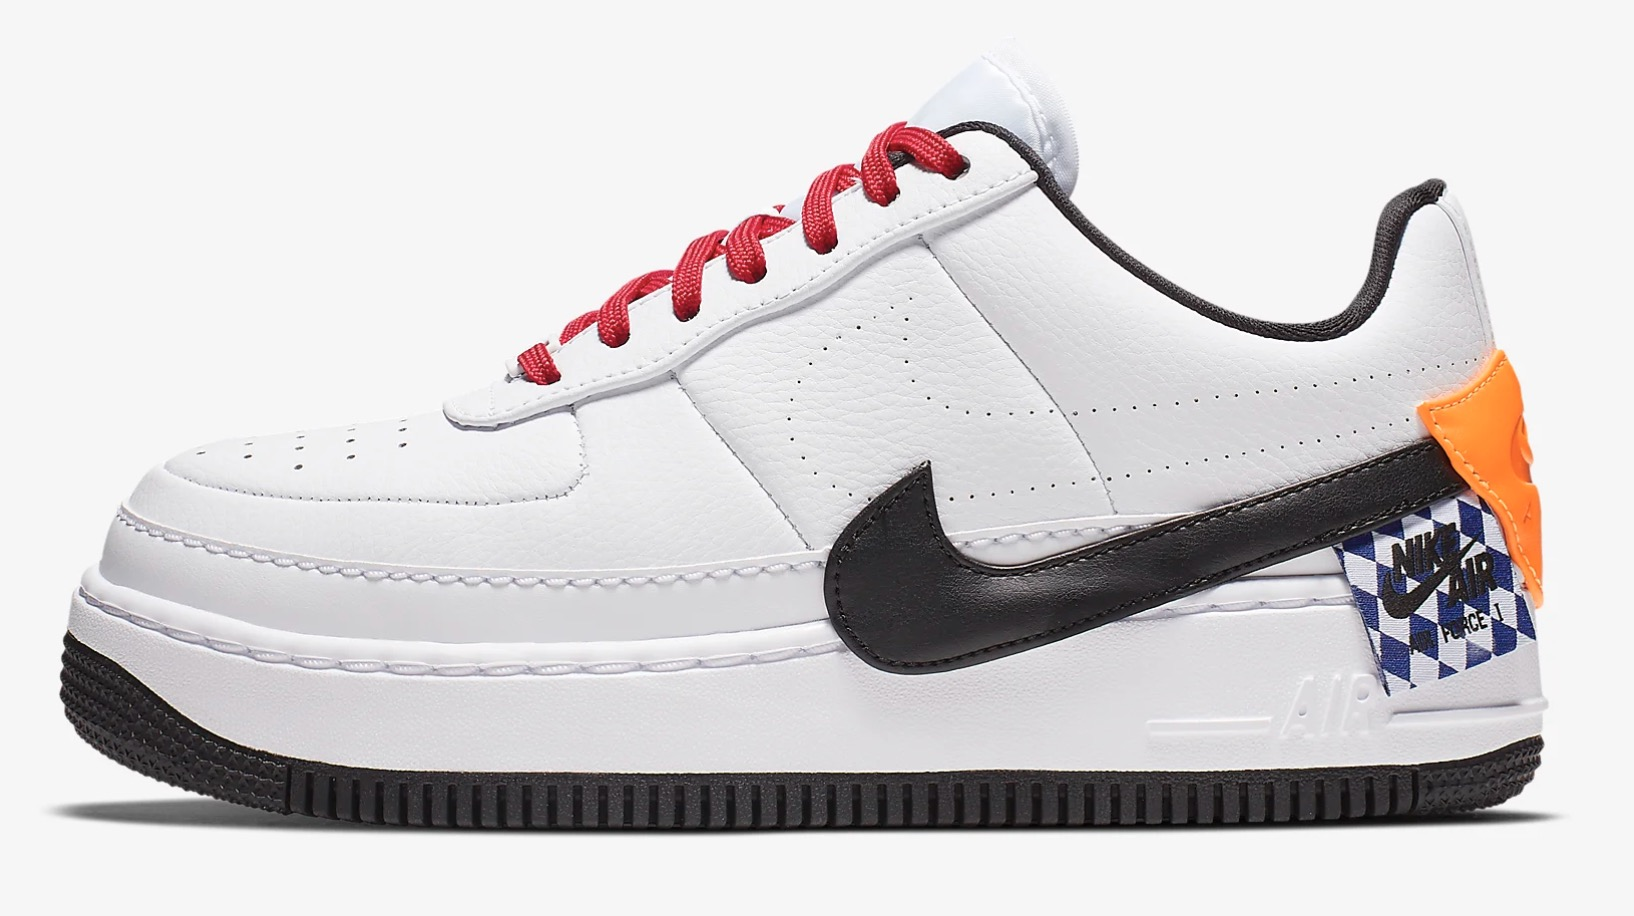 Take A Look At The Colourful Details On This Nike AF 1